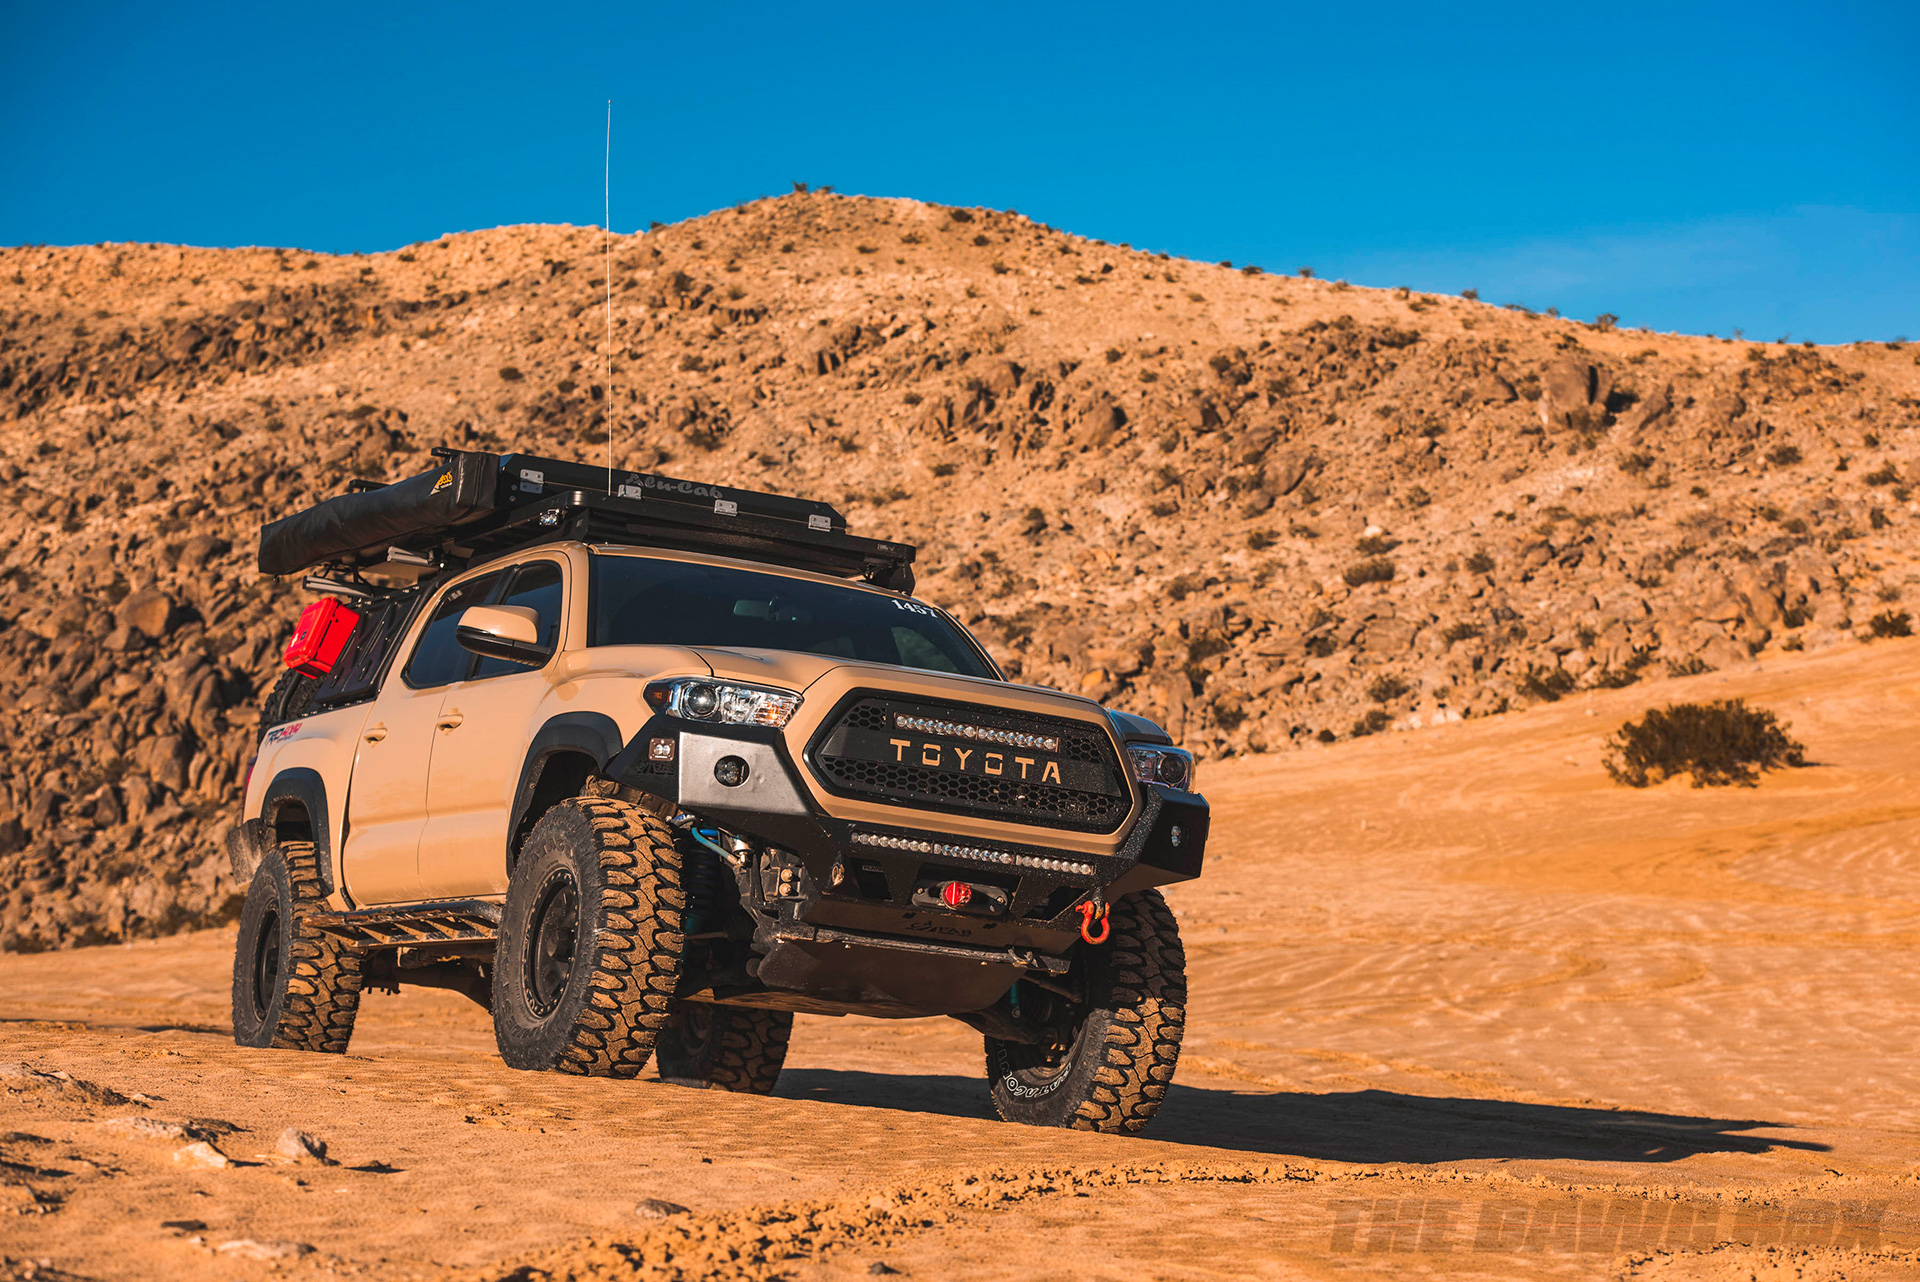 Toyota Tacoma with 35 inch Milestar Patagonia MT tires driving through a sandy desert